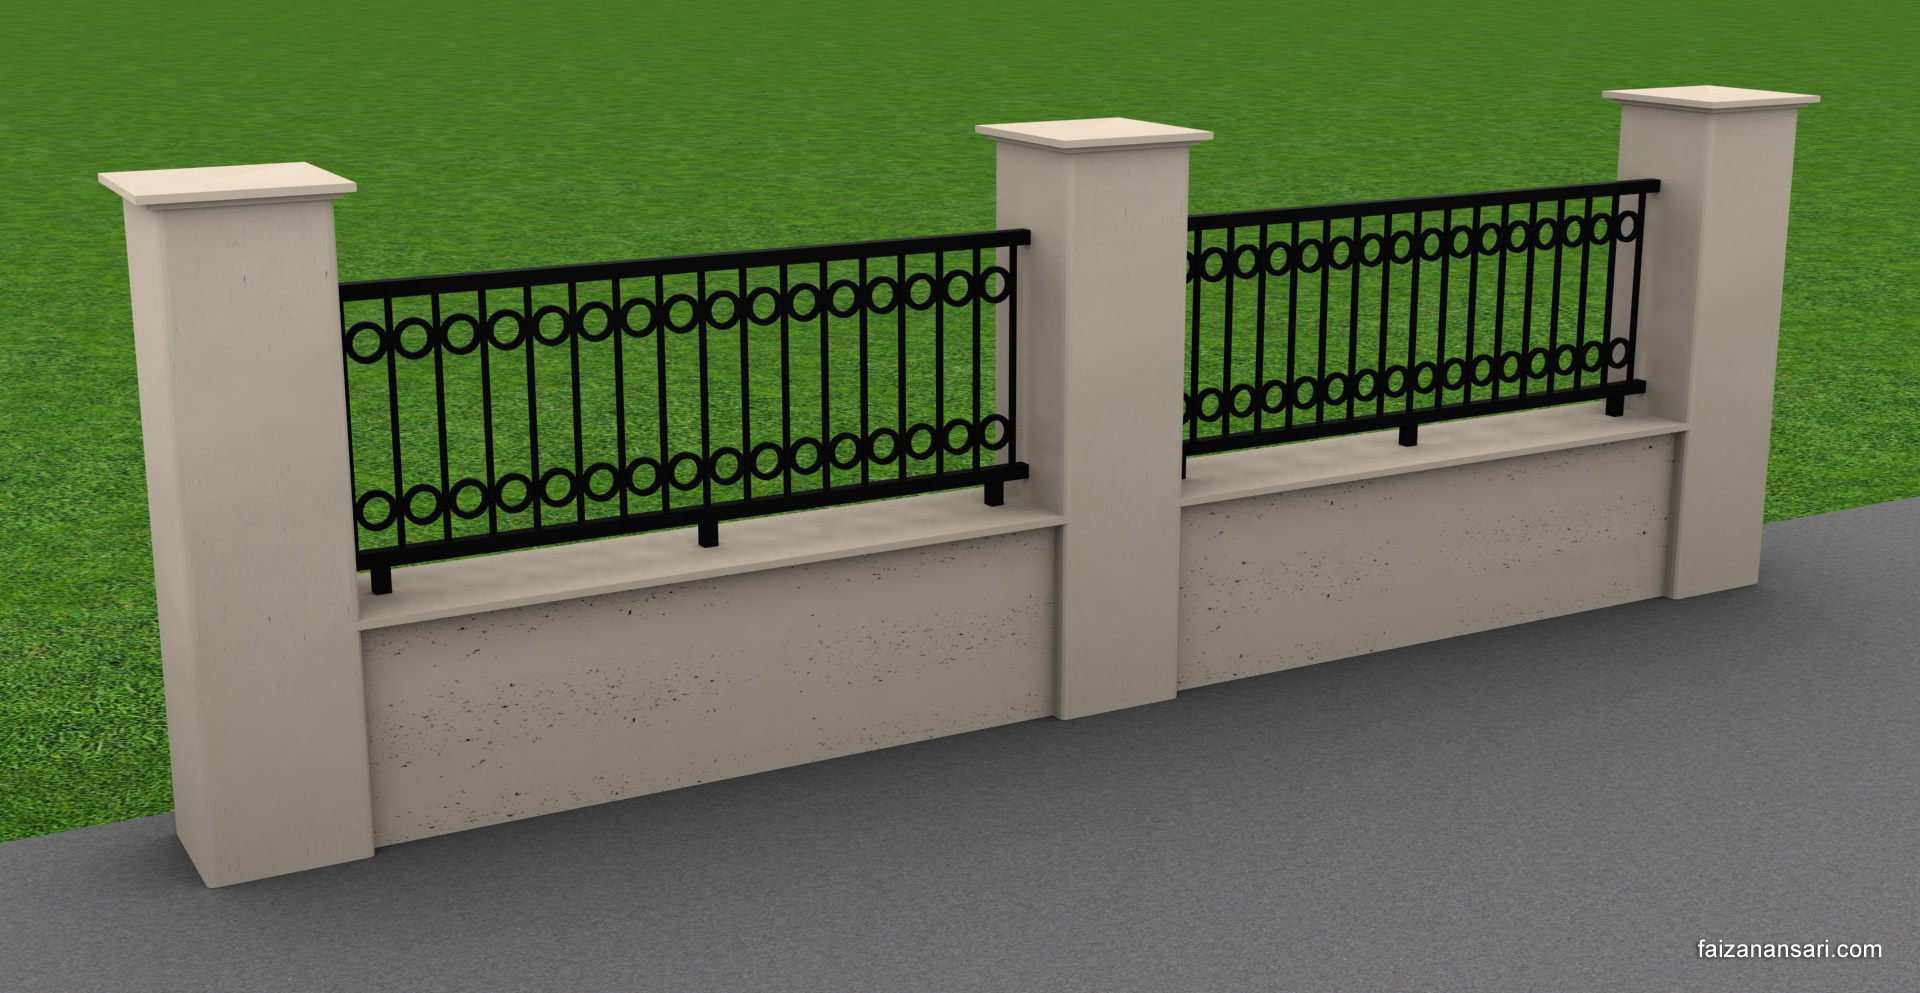 Fence - 3ds Max 2010 by faizansari90